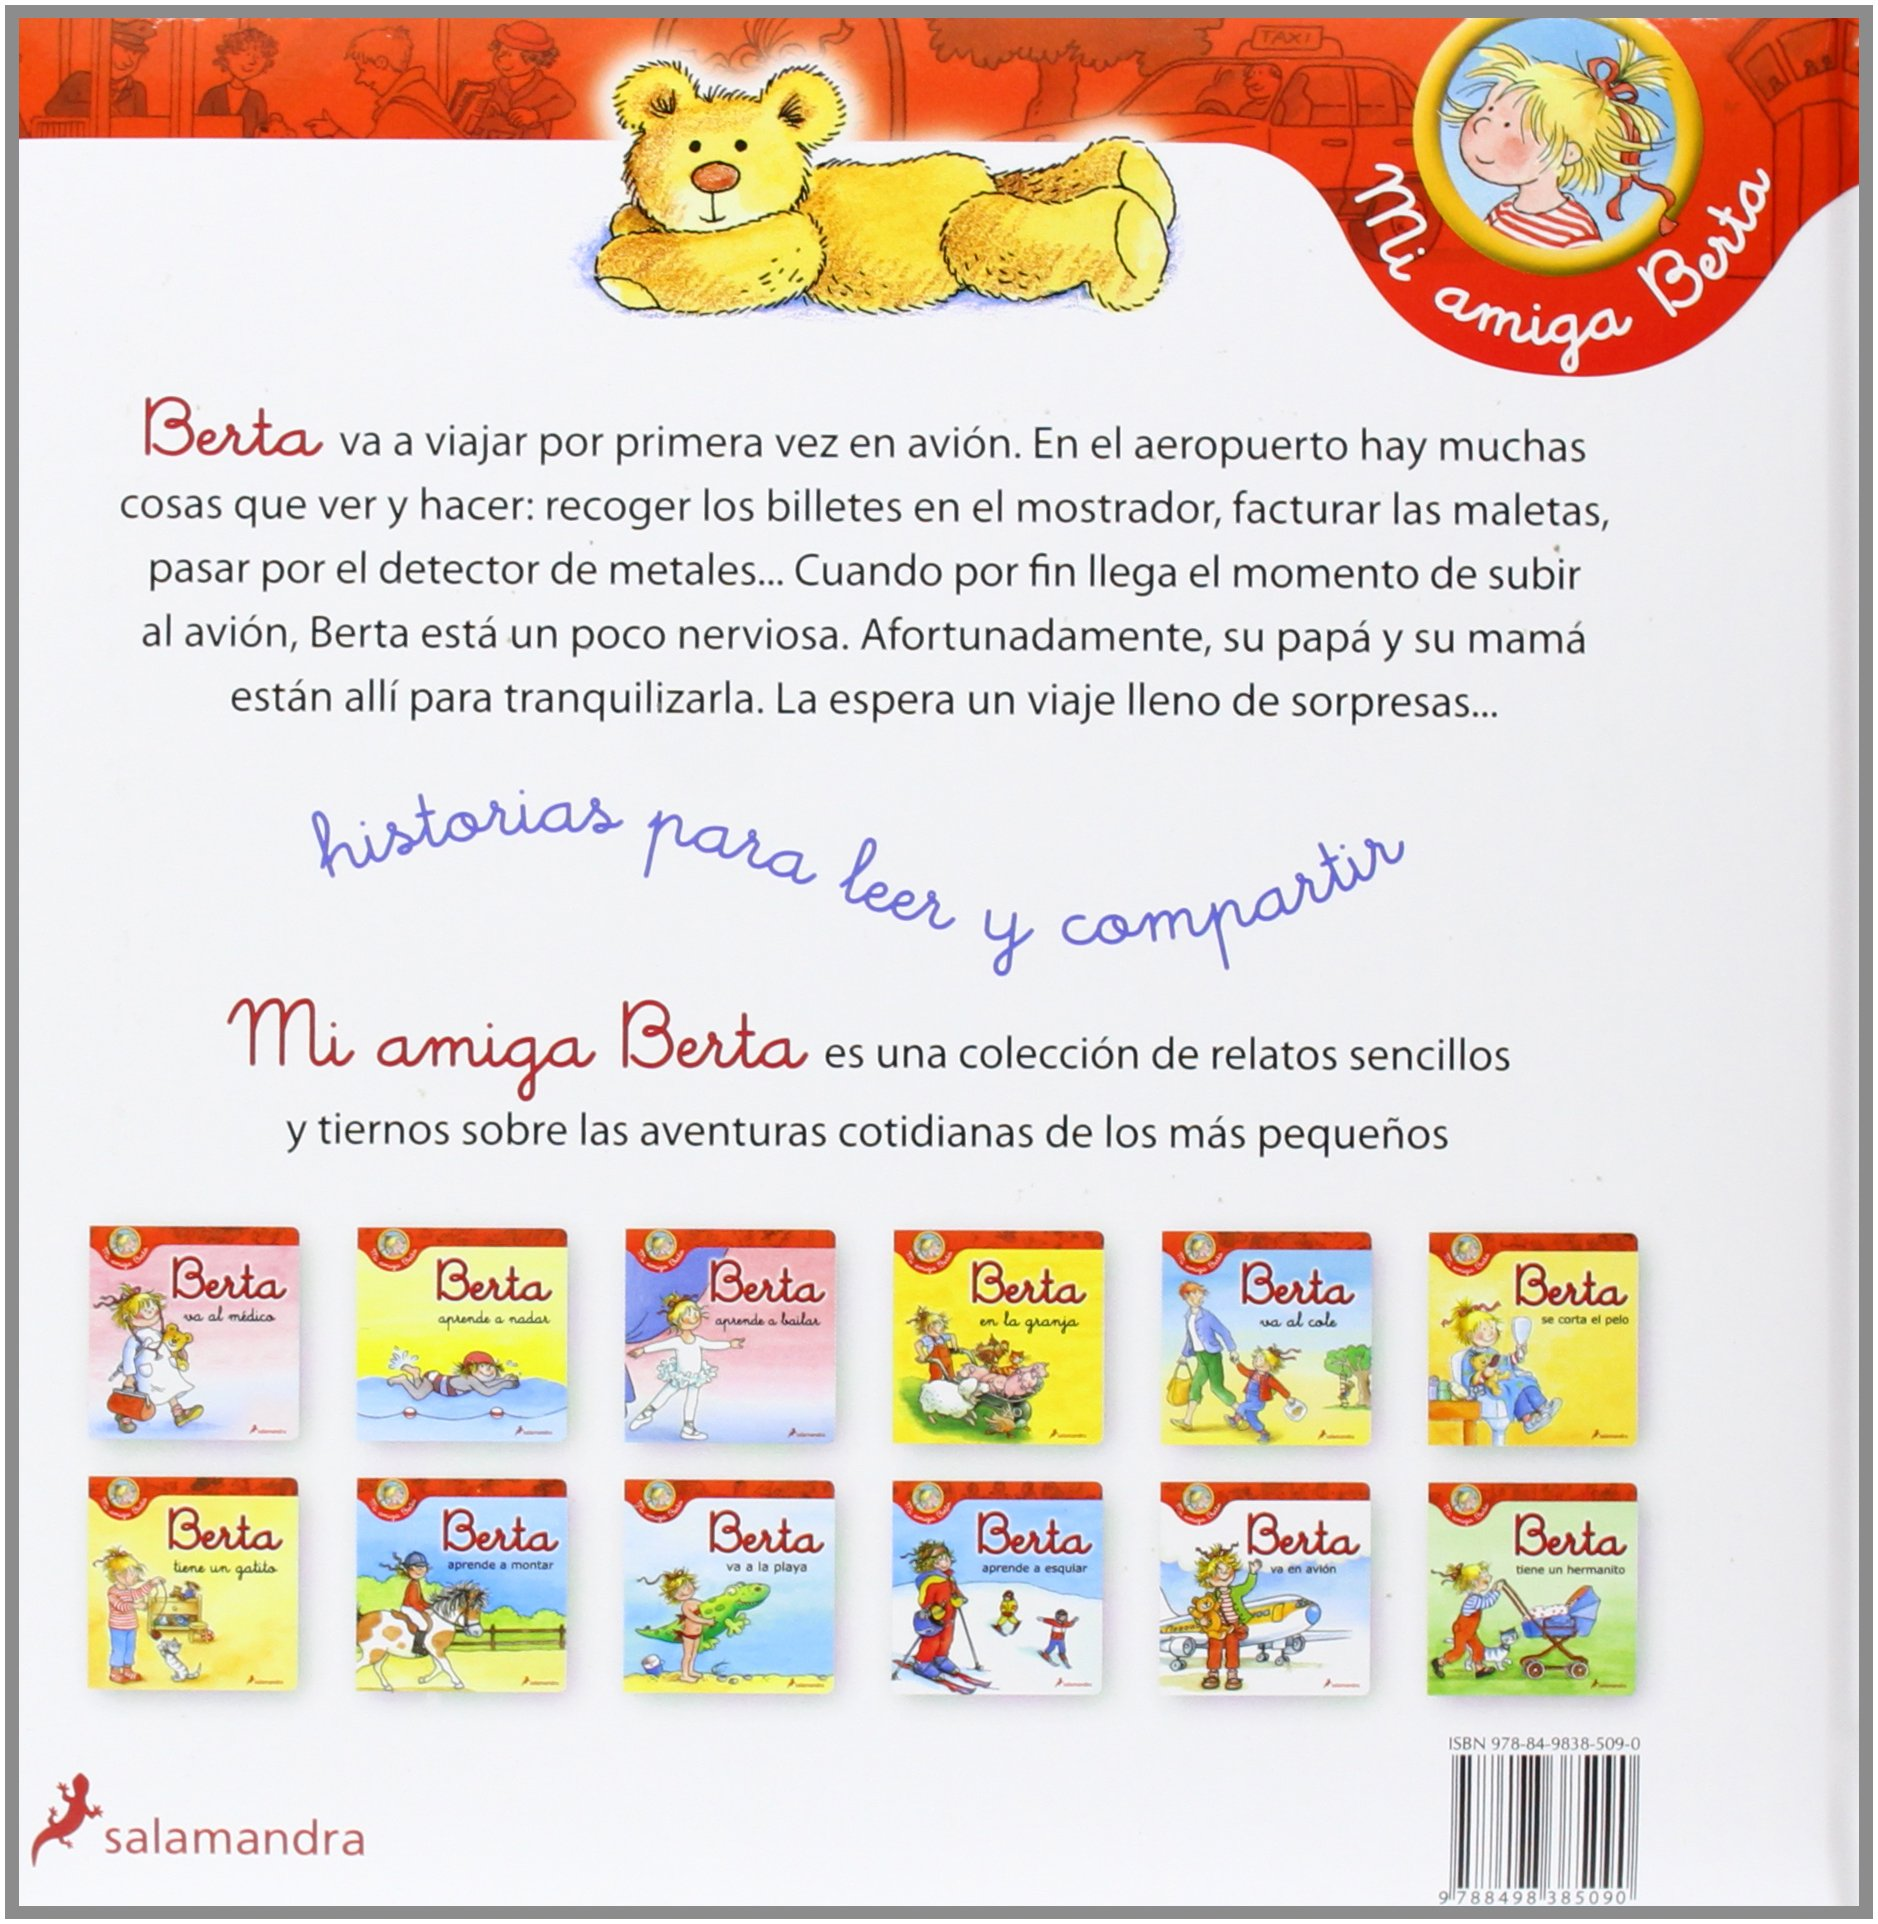 Berta va en avion (My Friend Berta) (Spanish Edition): Liane Schneider: 9788498385090: Amazon.com: Books